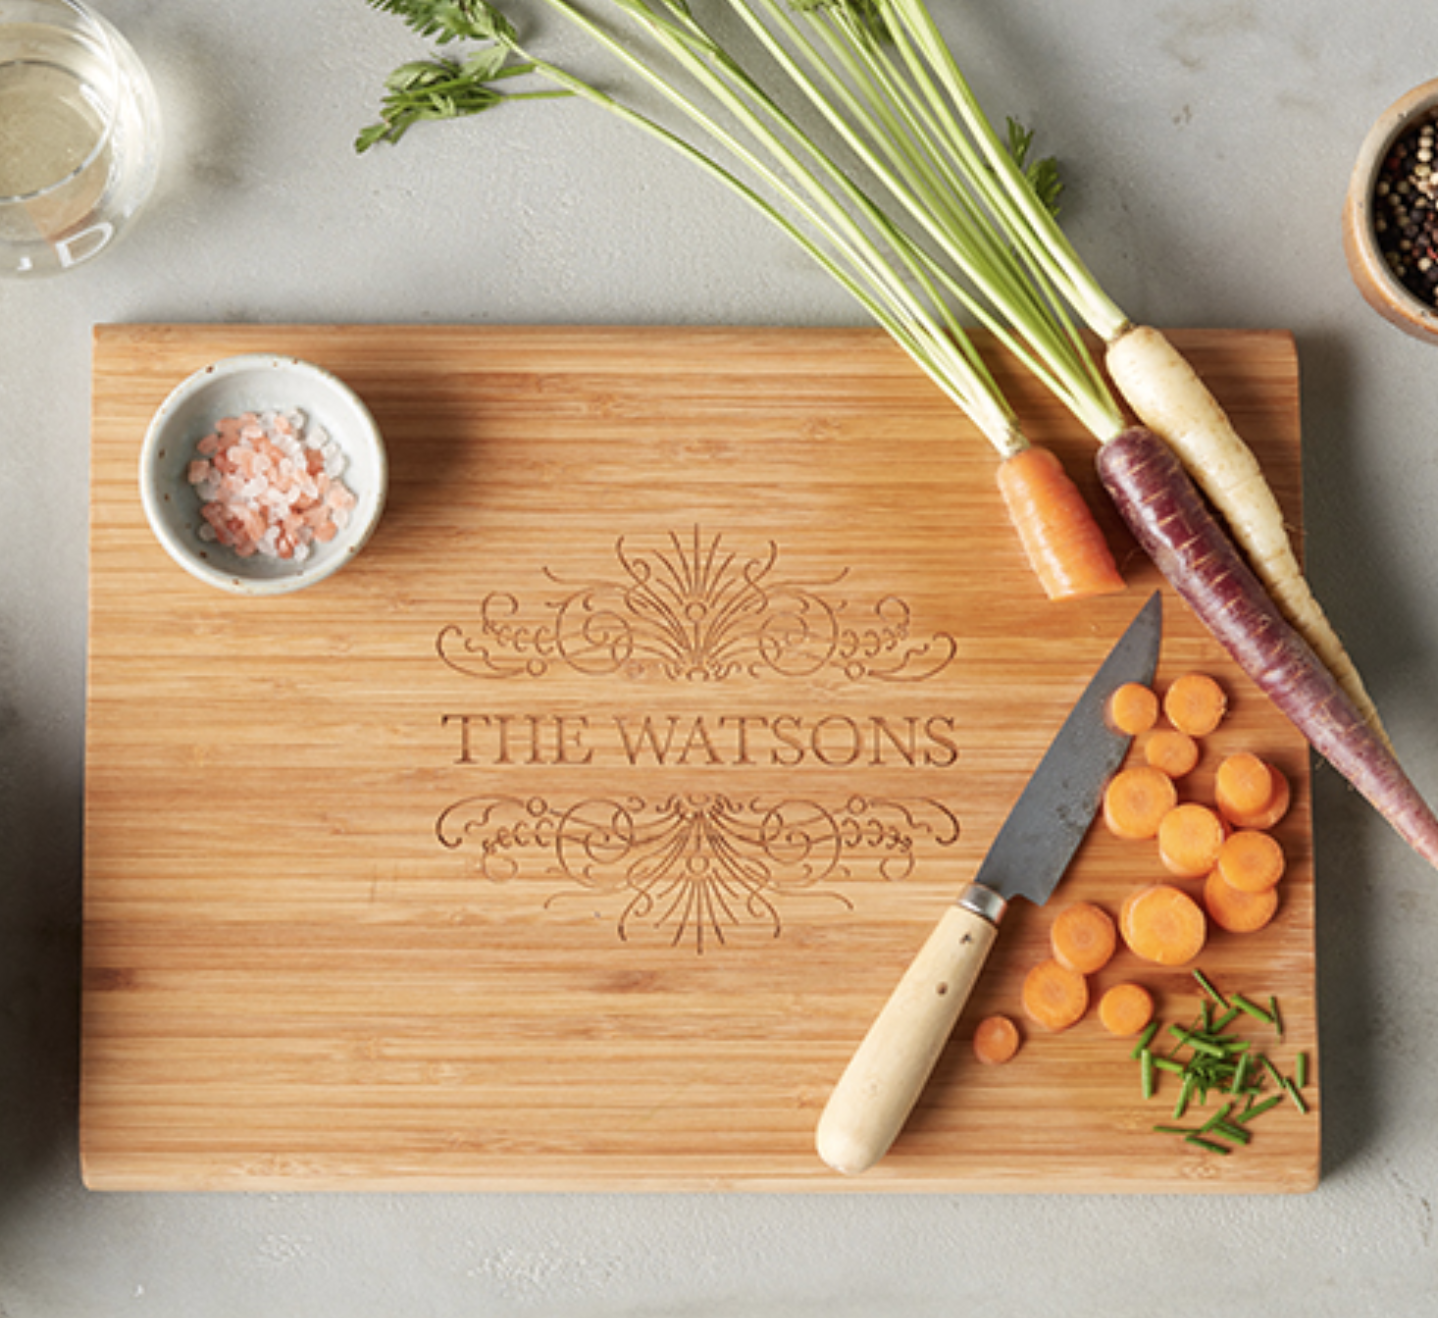 """Customized cutting board with """"The Watsons"""" engraved in the middle"""